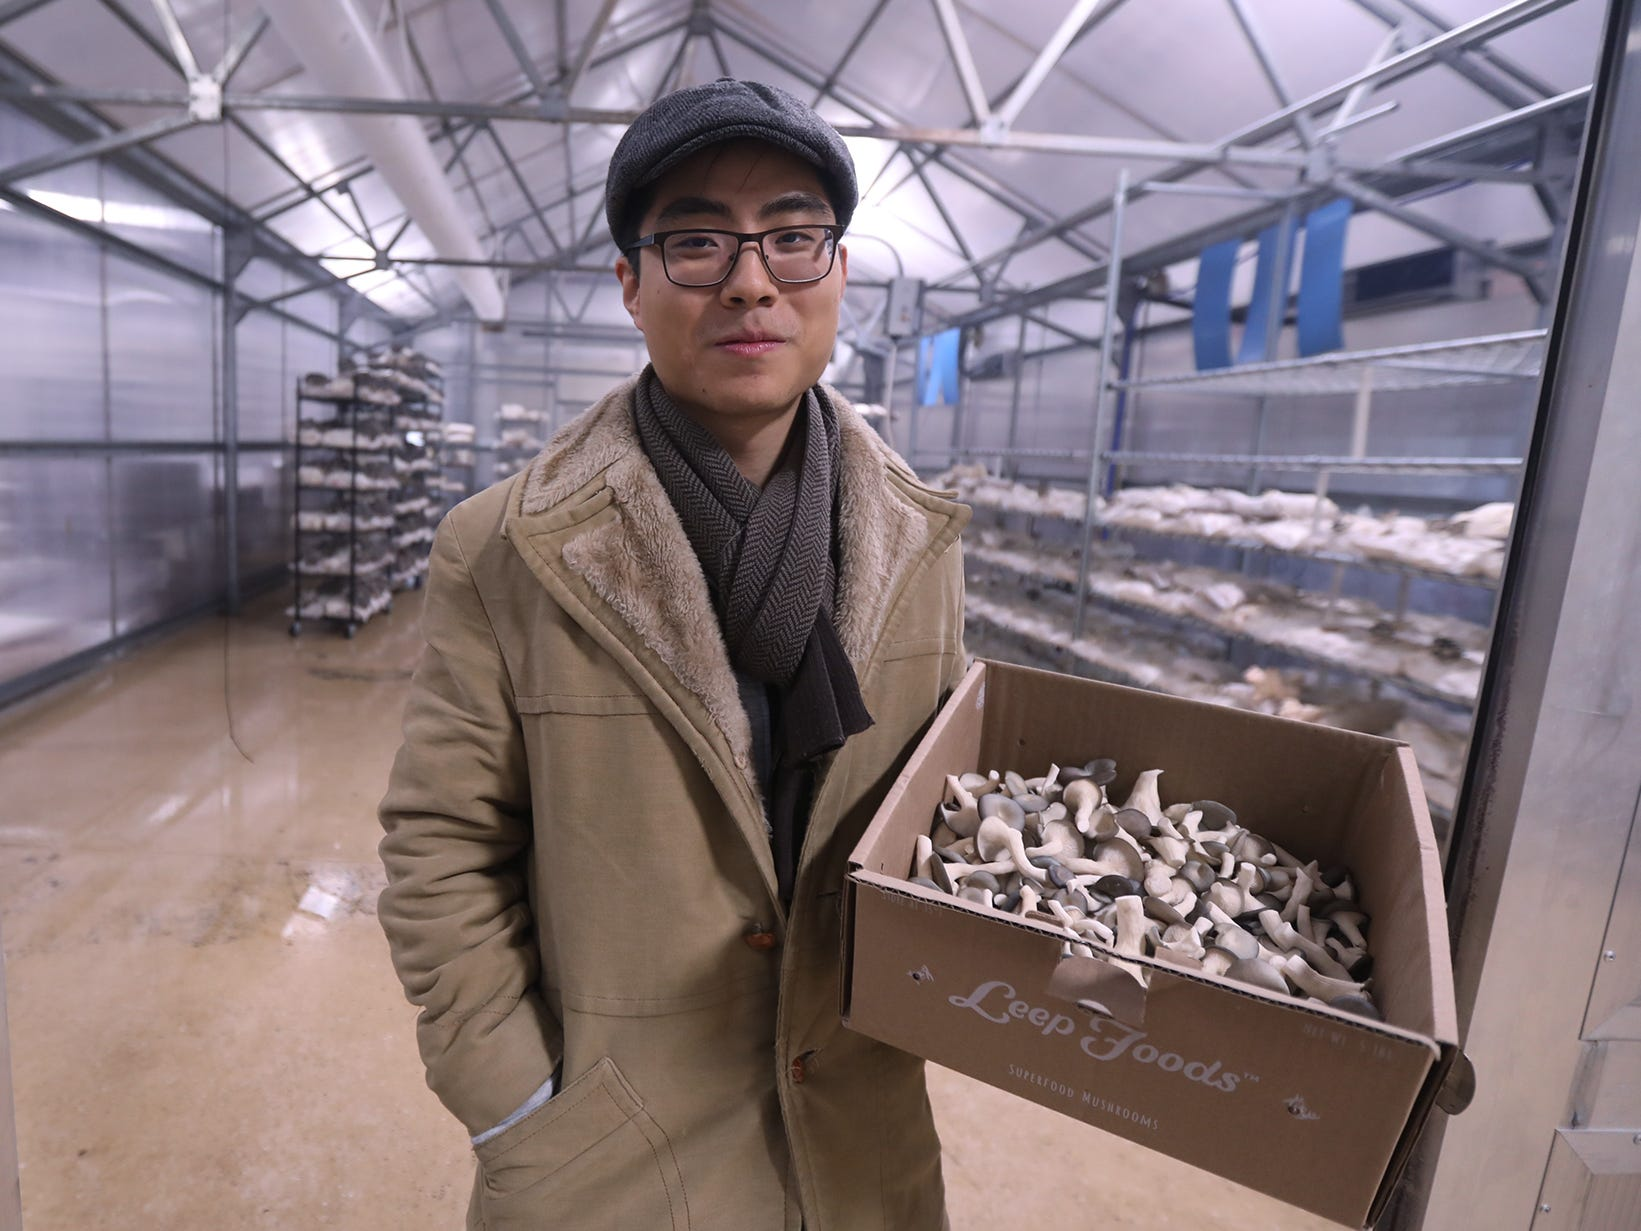 George Zheng of Leep Foods at their facility in Henrietta.  Leep Foods currently sells two types of mushrooms, Blue Oyster and Lion's Mane. Zheng is holding a box of Blue Oyster Mushrooms; behind him are mushrooms almost completely grown.